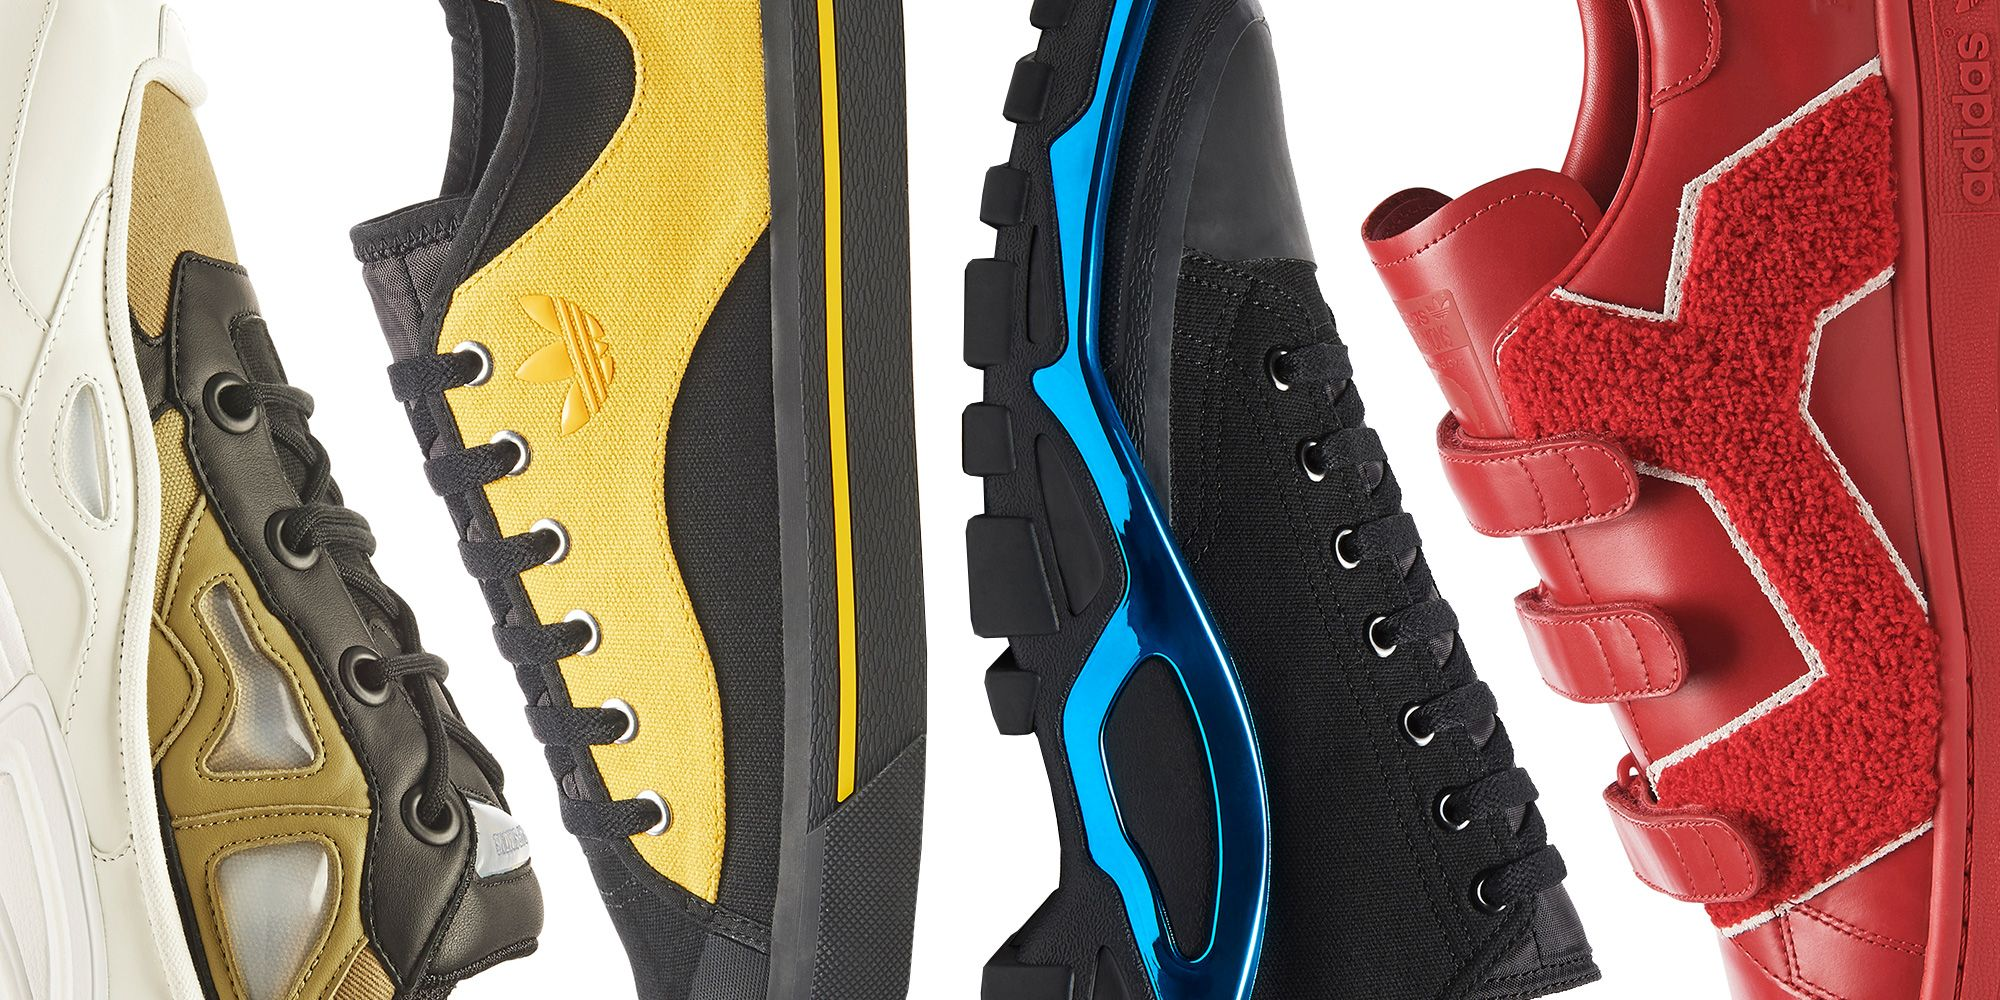 Raf Simons Adidas Sneakers Are Everything - Raf Simons Launches New Adidas 4f5031c18d